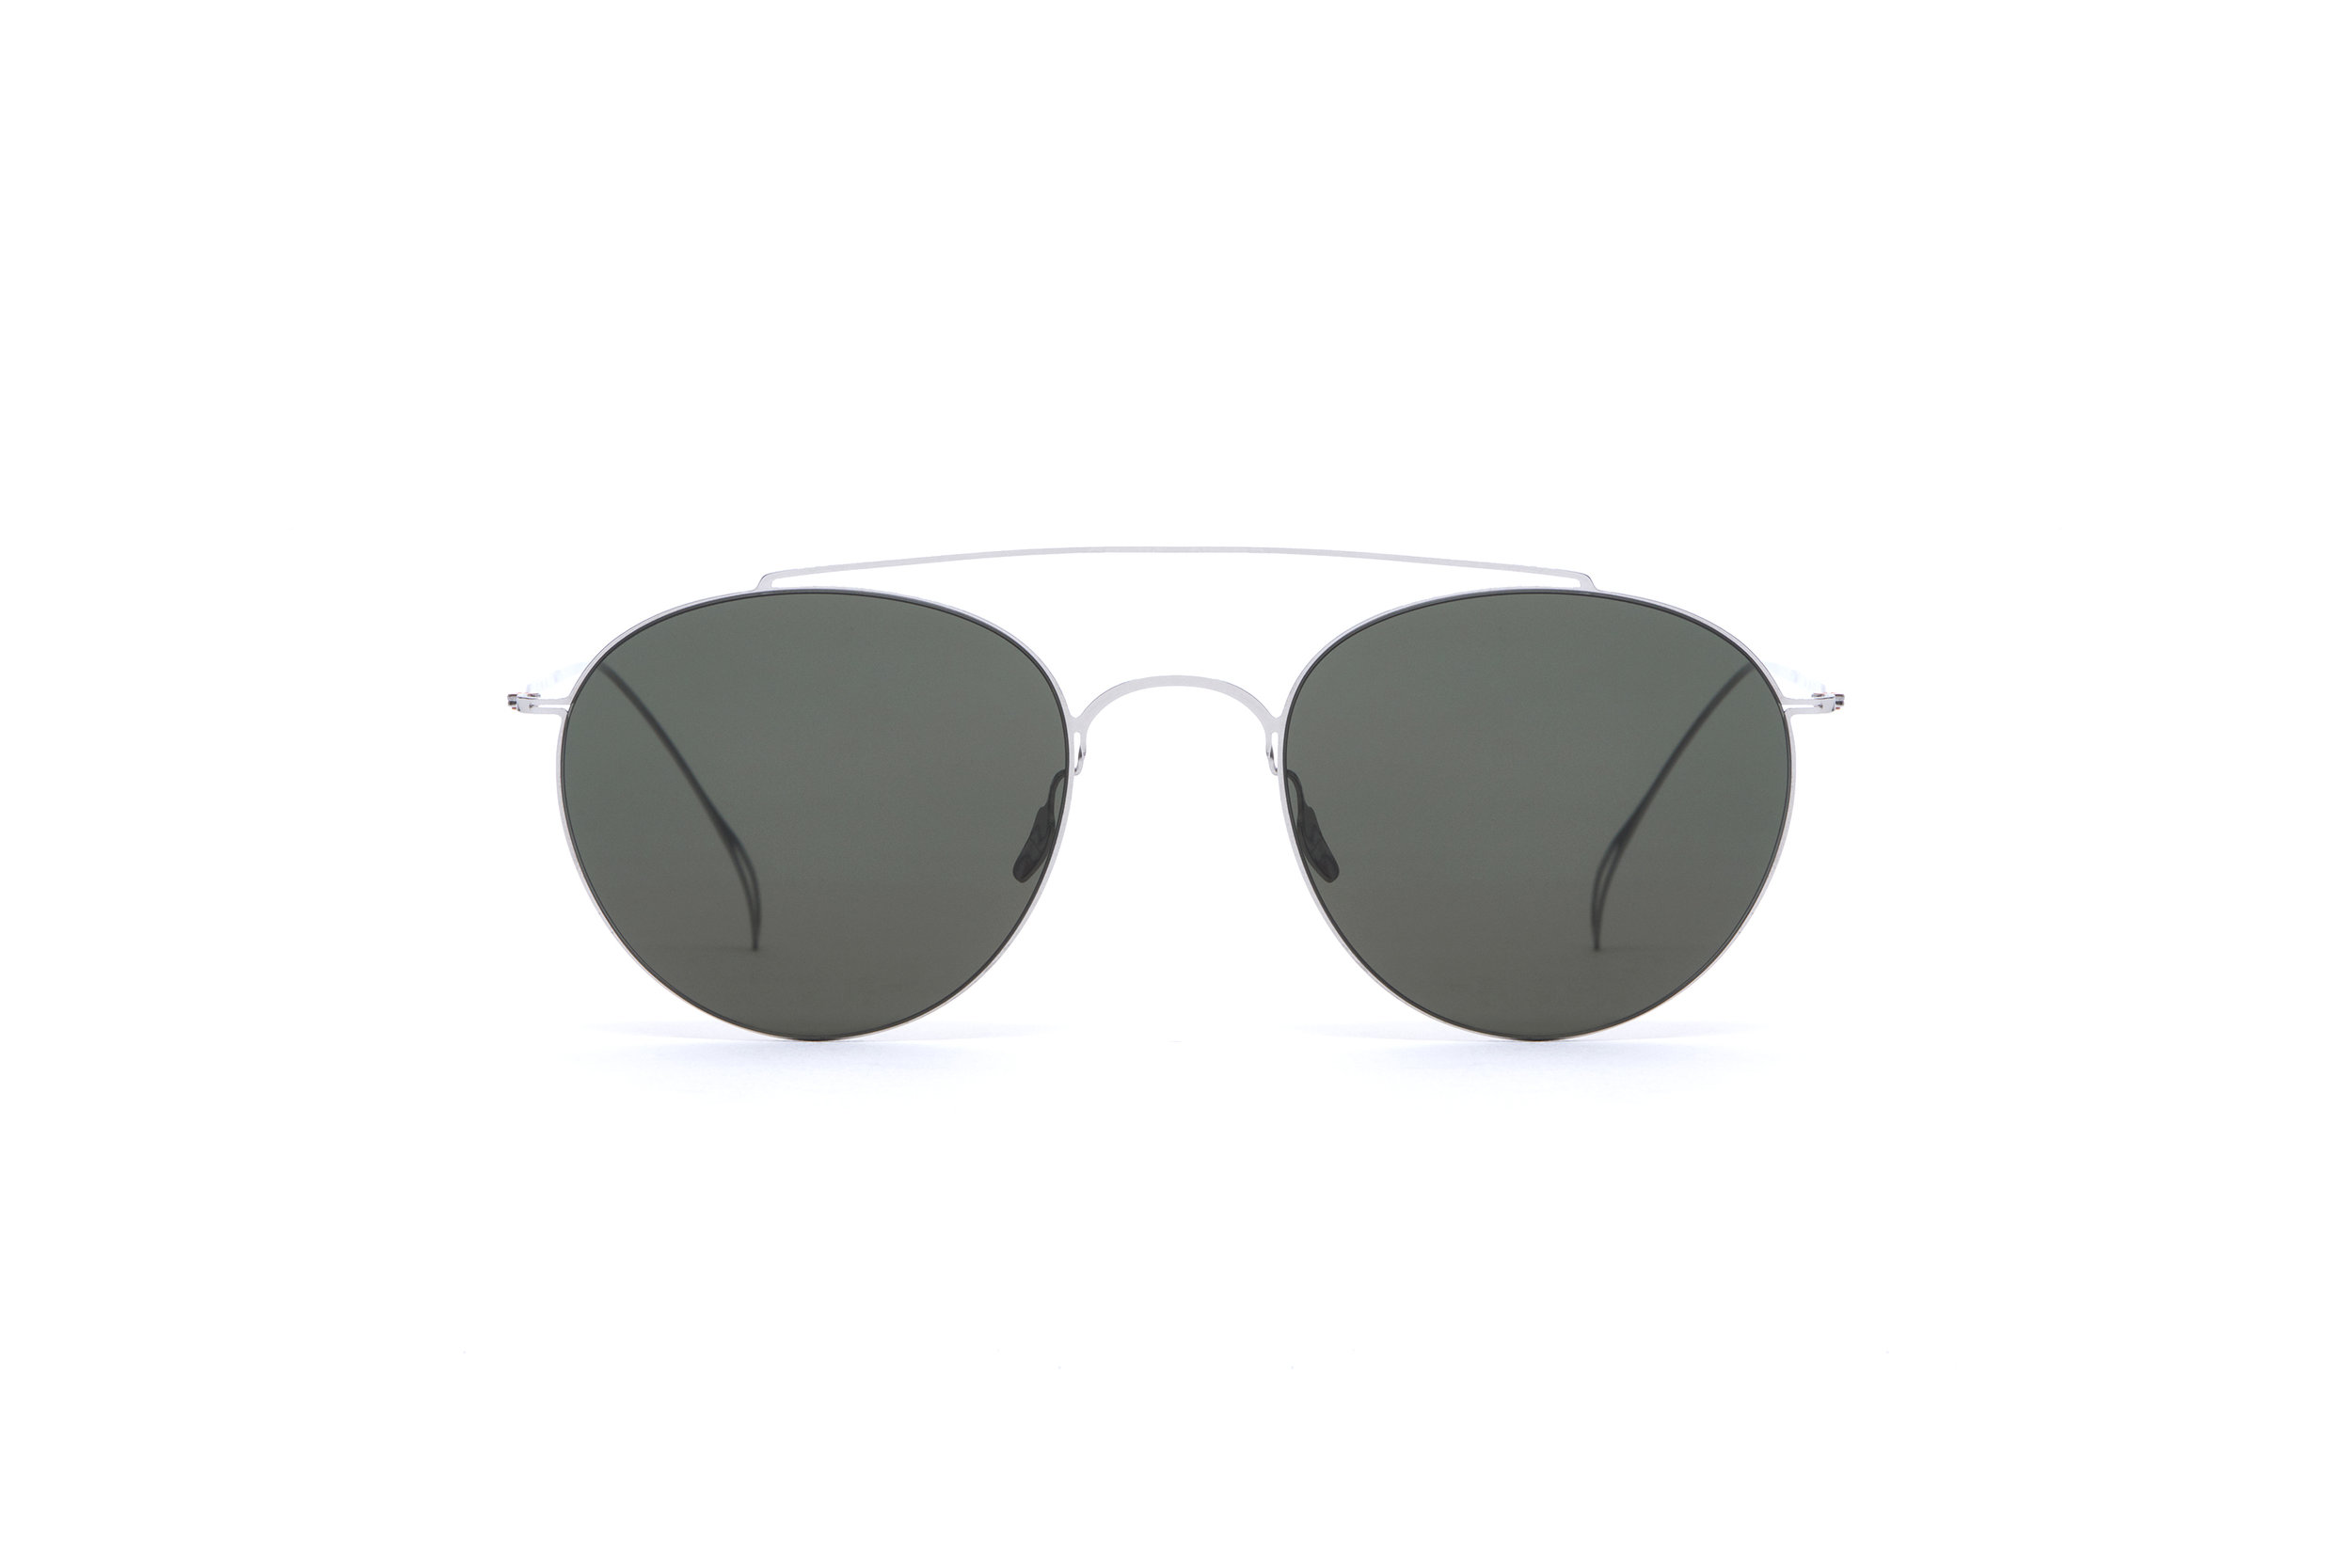 haffmans_neumeister_gray_silver_g15_ultralight_sunglasses_front_102462.jpg